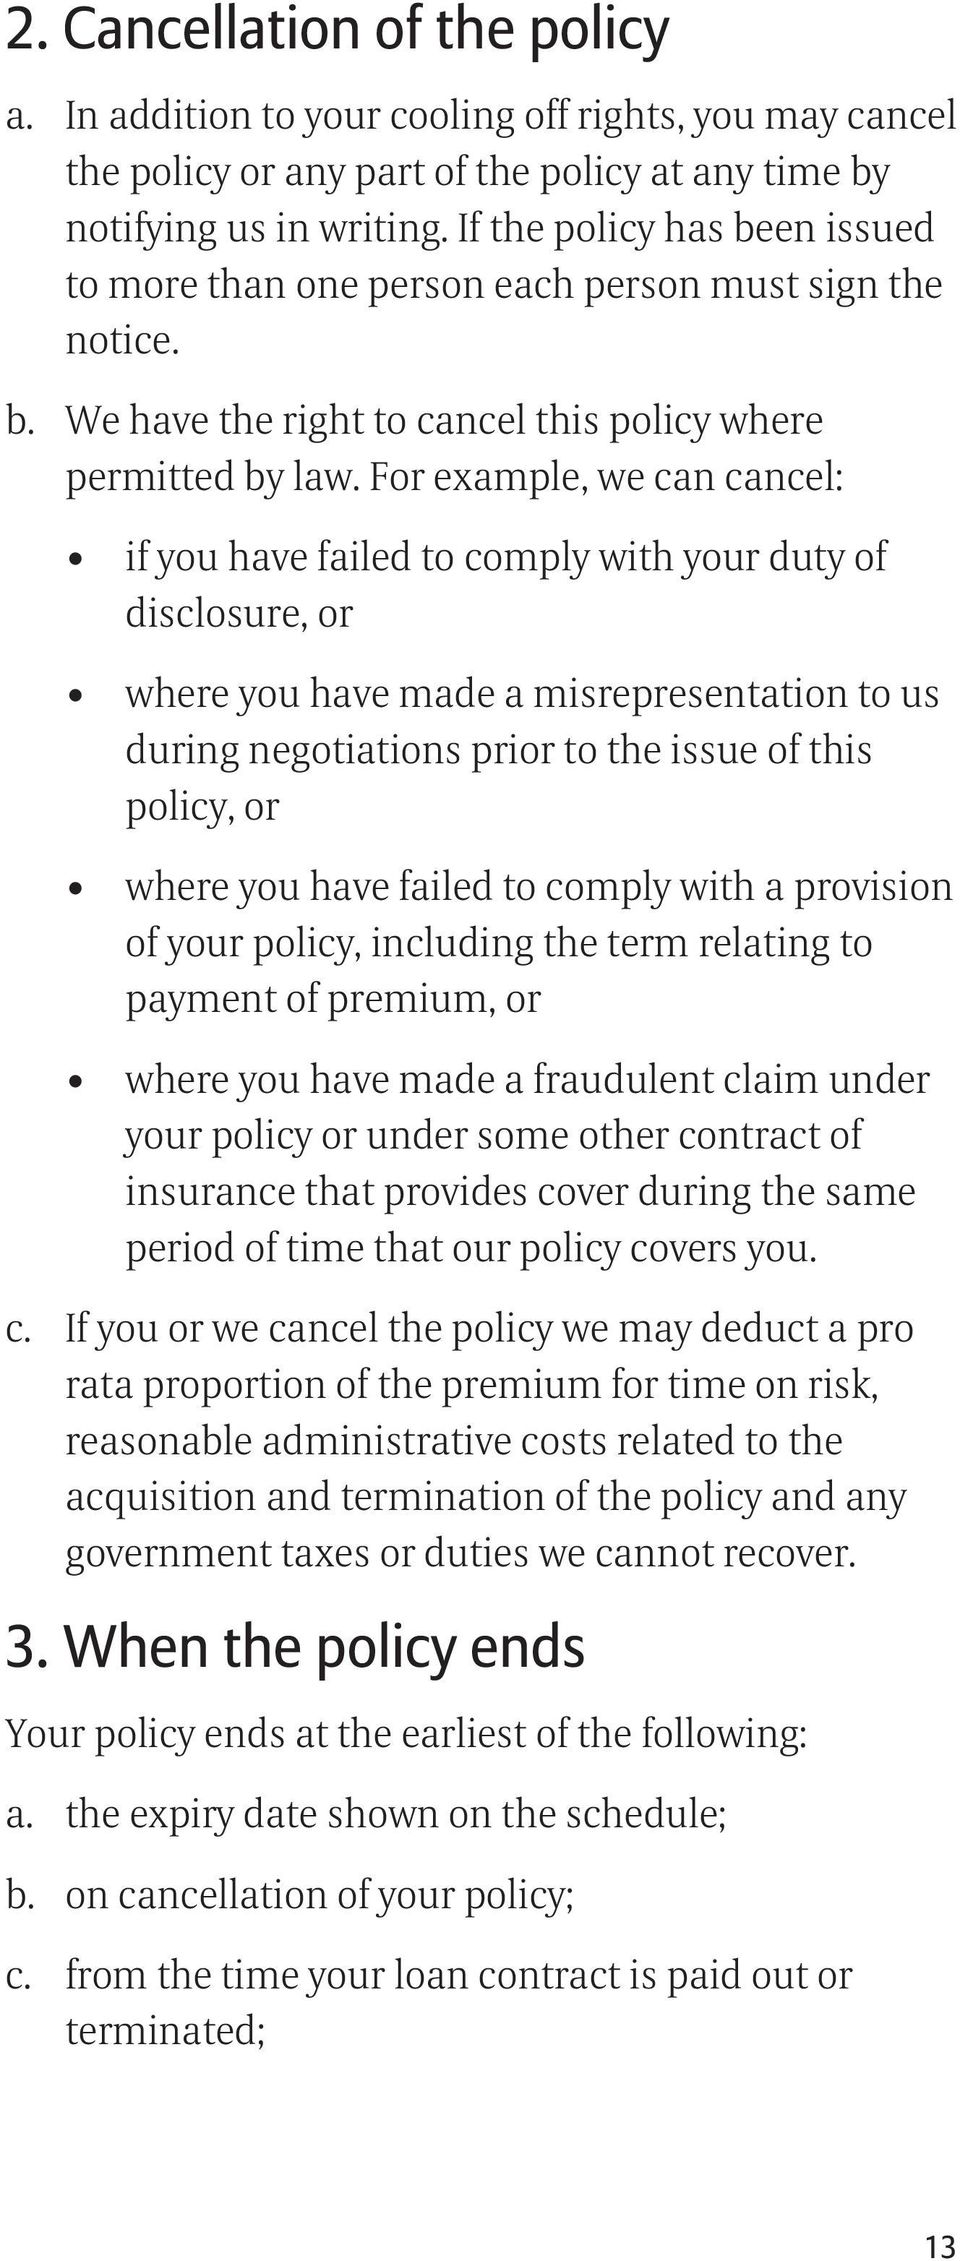 For example, we can cancel: if you have failed to comply with your duty of disclosure, or where you have made a misrepresentation to us during negotiations prior to the issue of this policy, or where